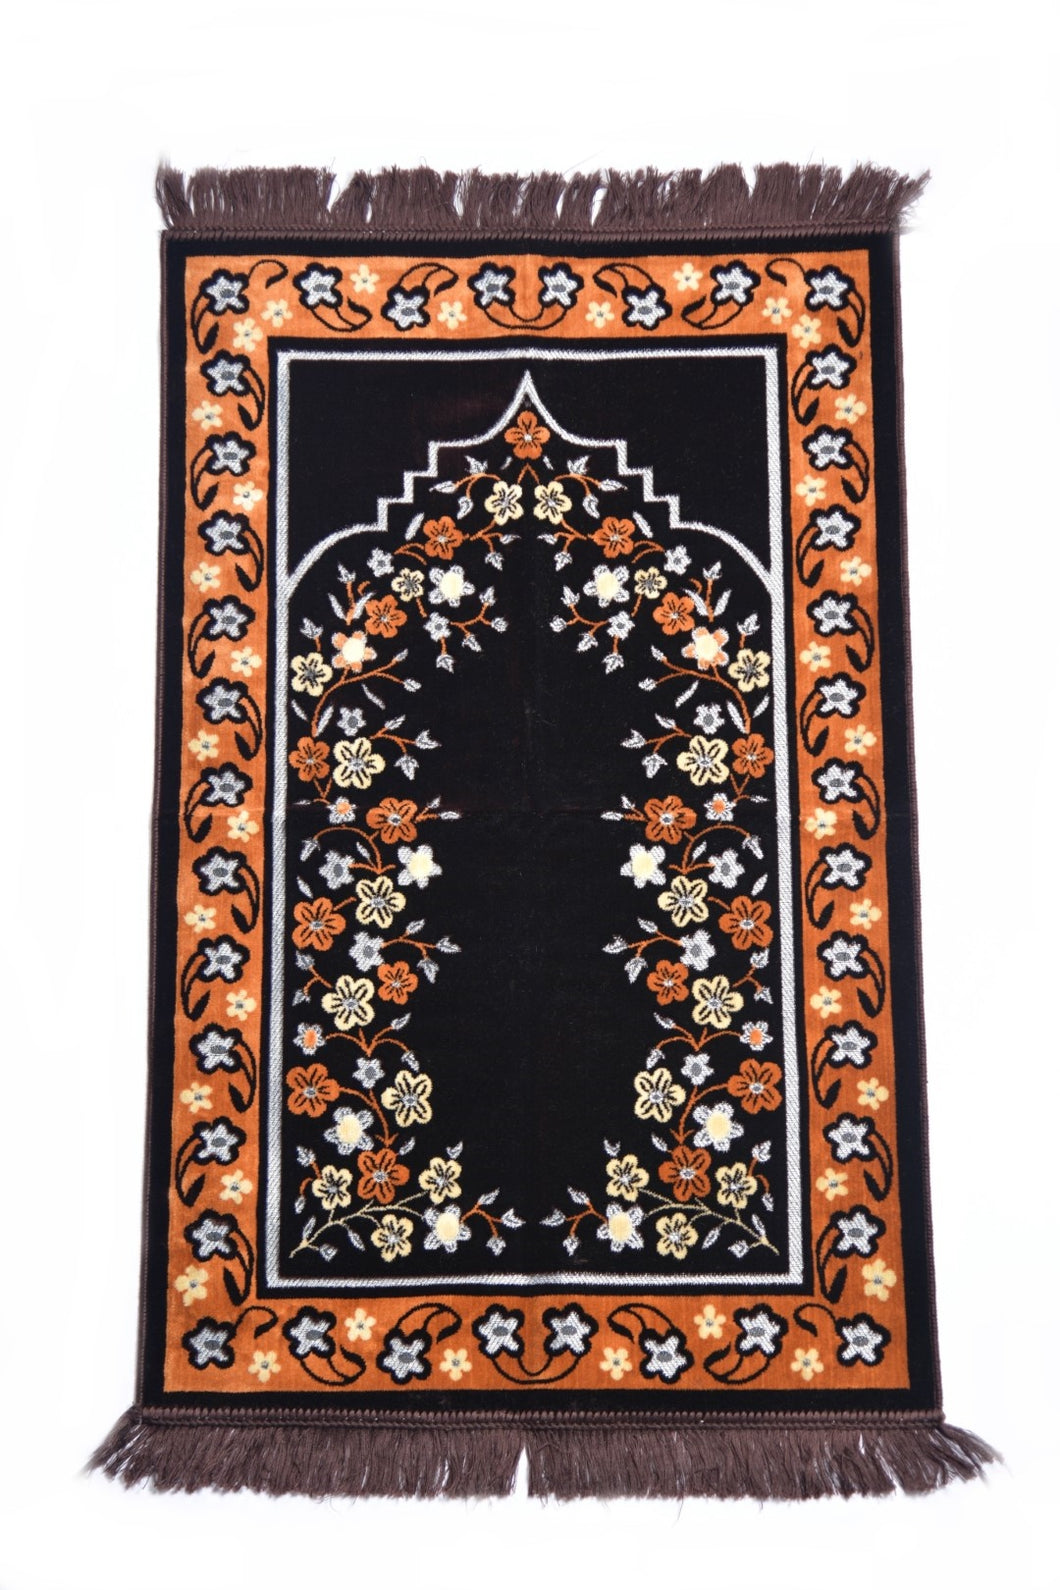 Al Arabia Ultra Lurex Muslim Prayer Rug - Very Thick Plush Velvet - Floral Design & Fringes On Both Sides - Islamic Prayer Mat - Ideal Gift for Ramadan & Special Occasions, 44 x 27